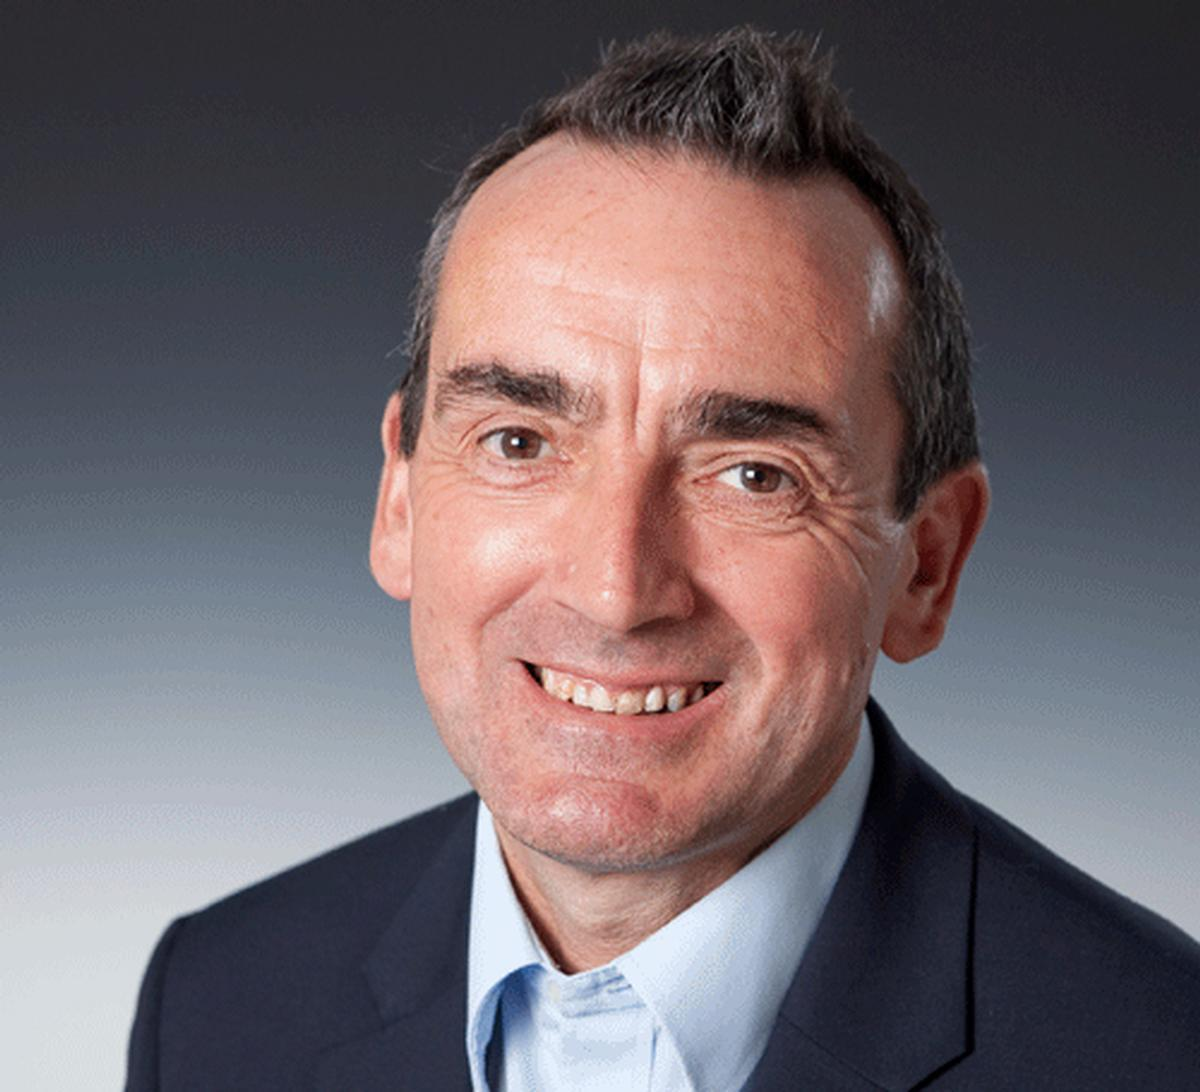 GLL managing director Mark Sesnan said the enterprise has decided it wants to take its operations nationally and outside London